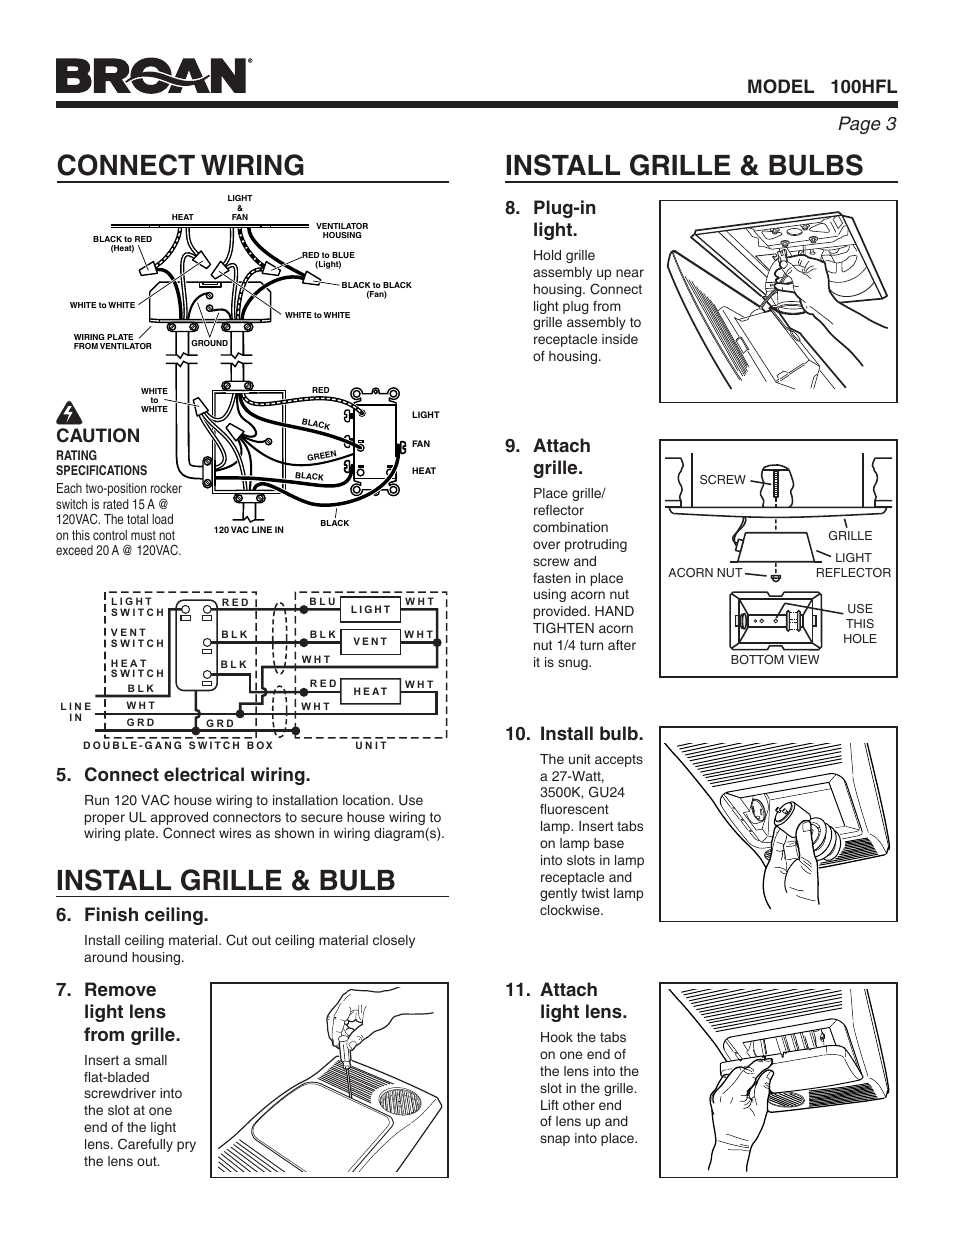 Install Grille Bulbs Connect Wiring Bulb Diagram For Broan Exhaust Fan Light Ventilation With And Heater 100hfl User Manual Page 3 8